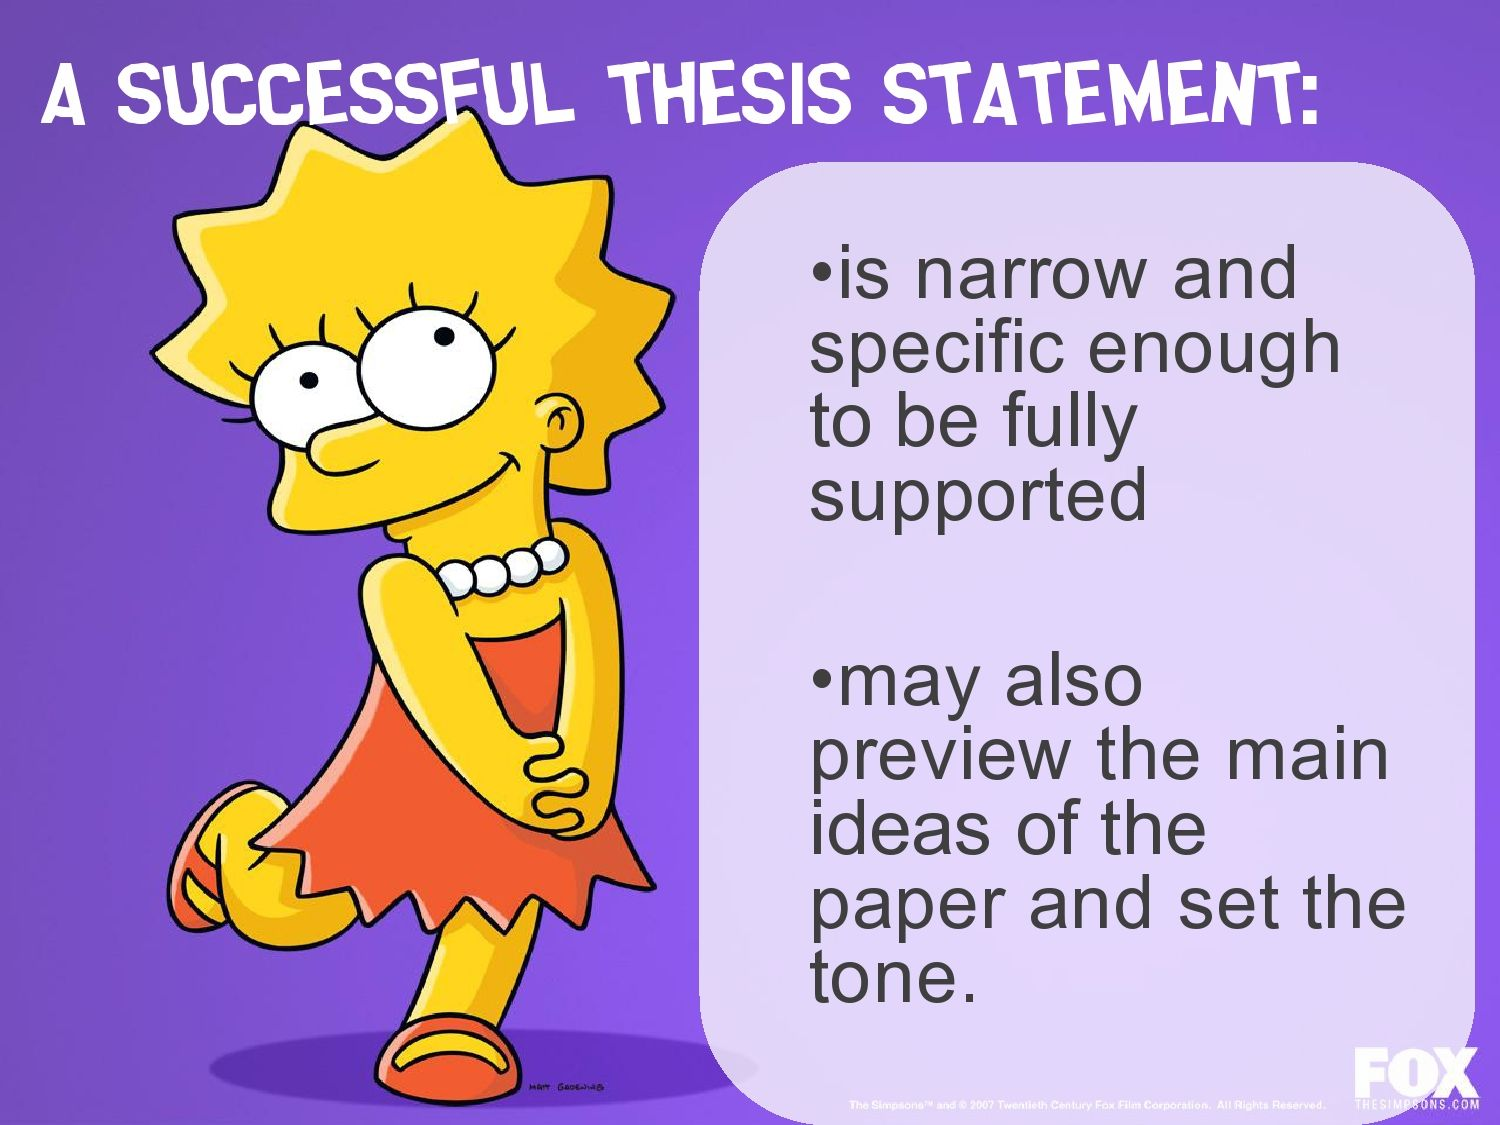 Essay Writing For High School Students Research Thesis Statement Maker Create A Good Thesis Statement See An  Example If You Are Ready To Write A Persuasive Of Controversial Issue  Essay  Life After High School Essay also Essay Writing Thesis Statement Lisa Simpson On Thesis Statements  Topic Sentences  Writing  Essay In English Language